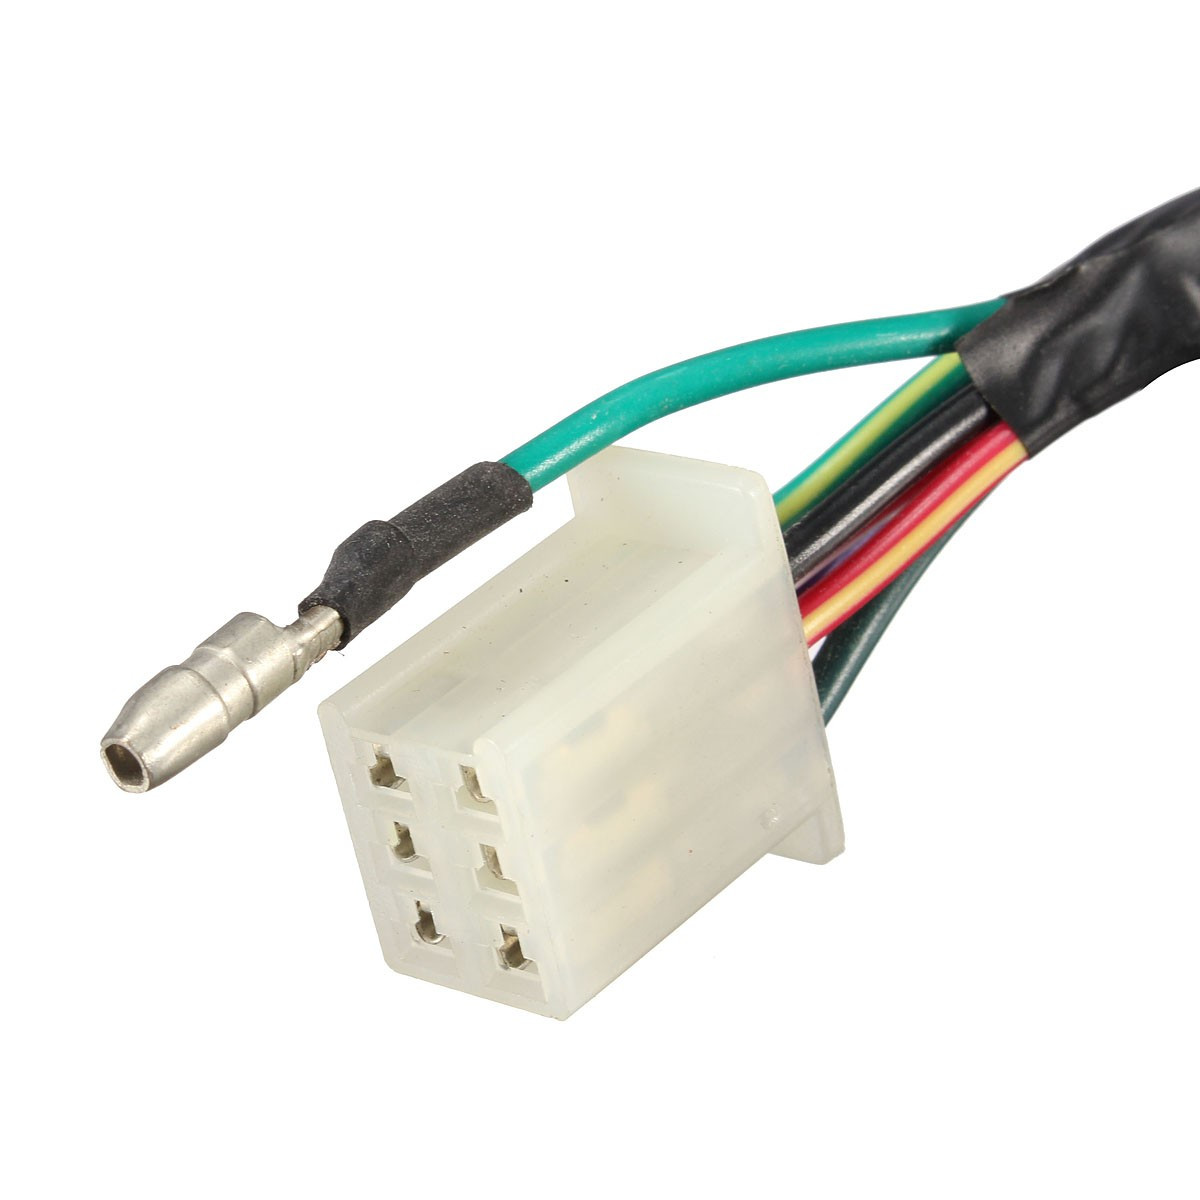 1 Inch Handlebar Control Switches With Wiring Harness For Harley Motorcycle Connector Blocks